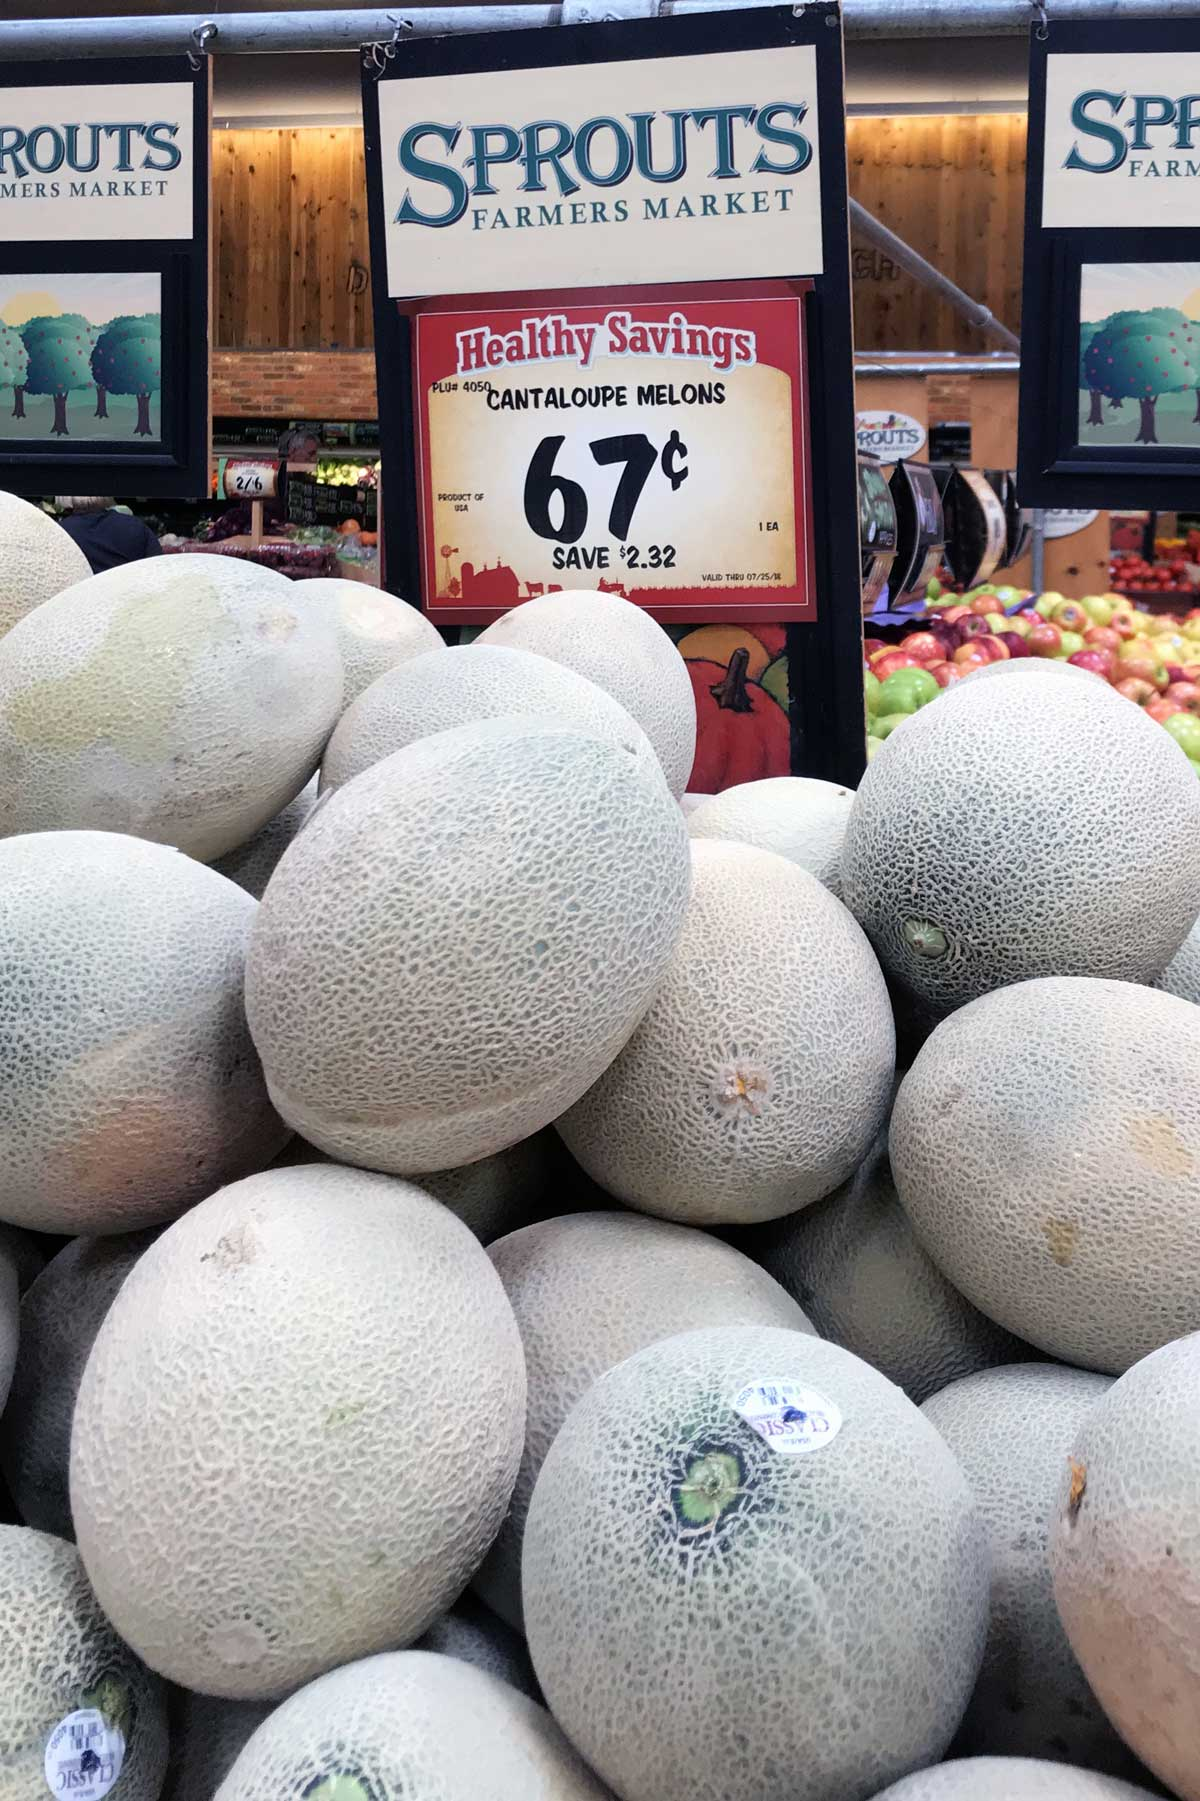 stack of cantaloupe melon on display at sprouts grocery.